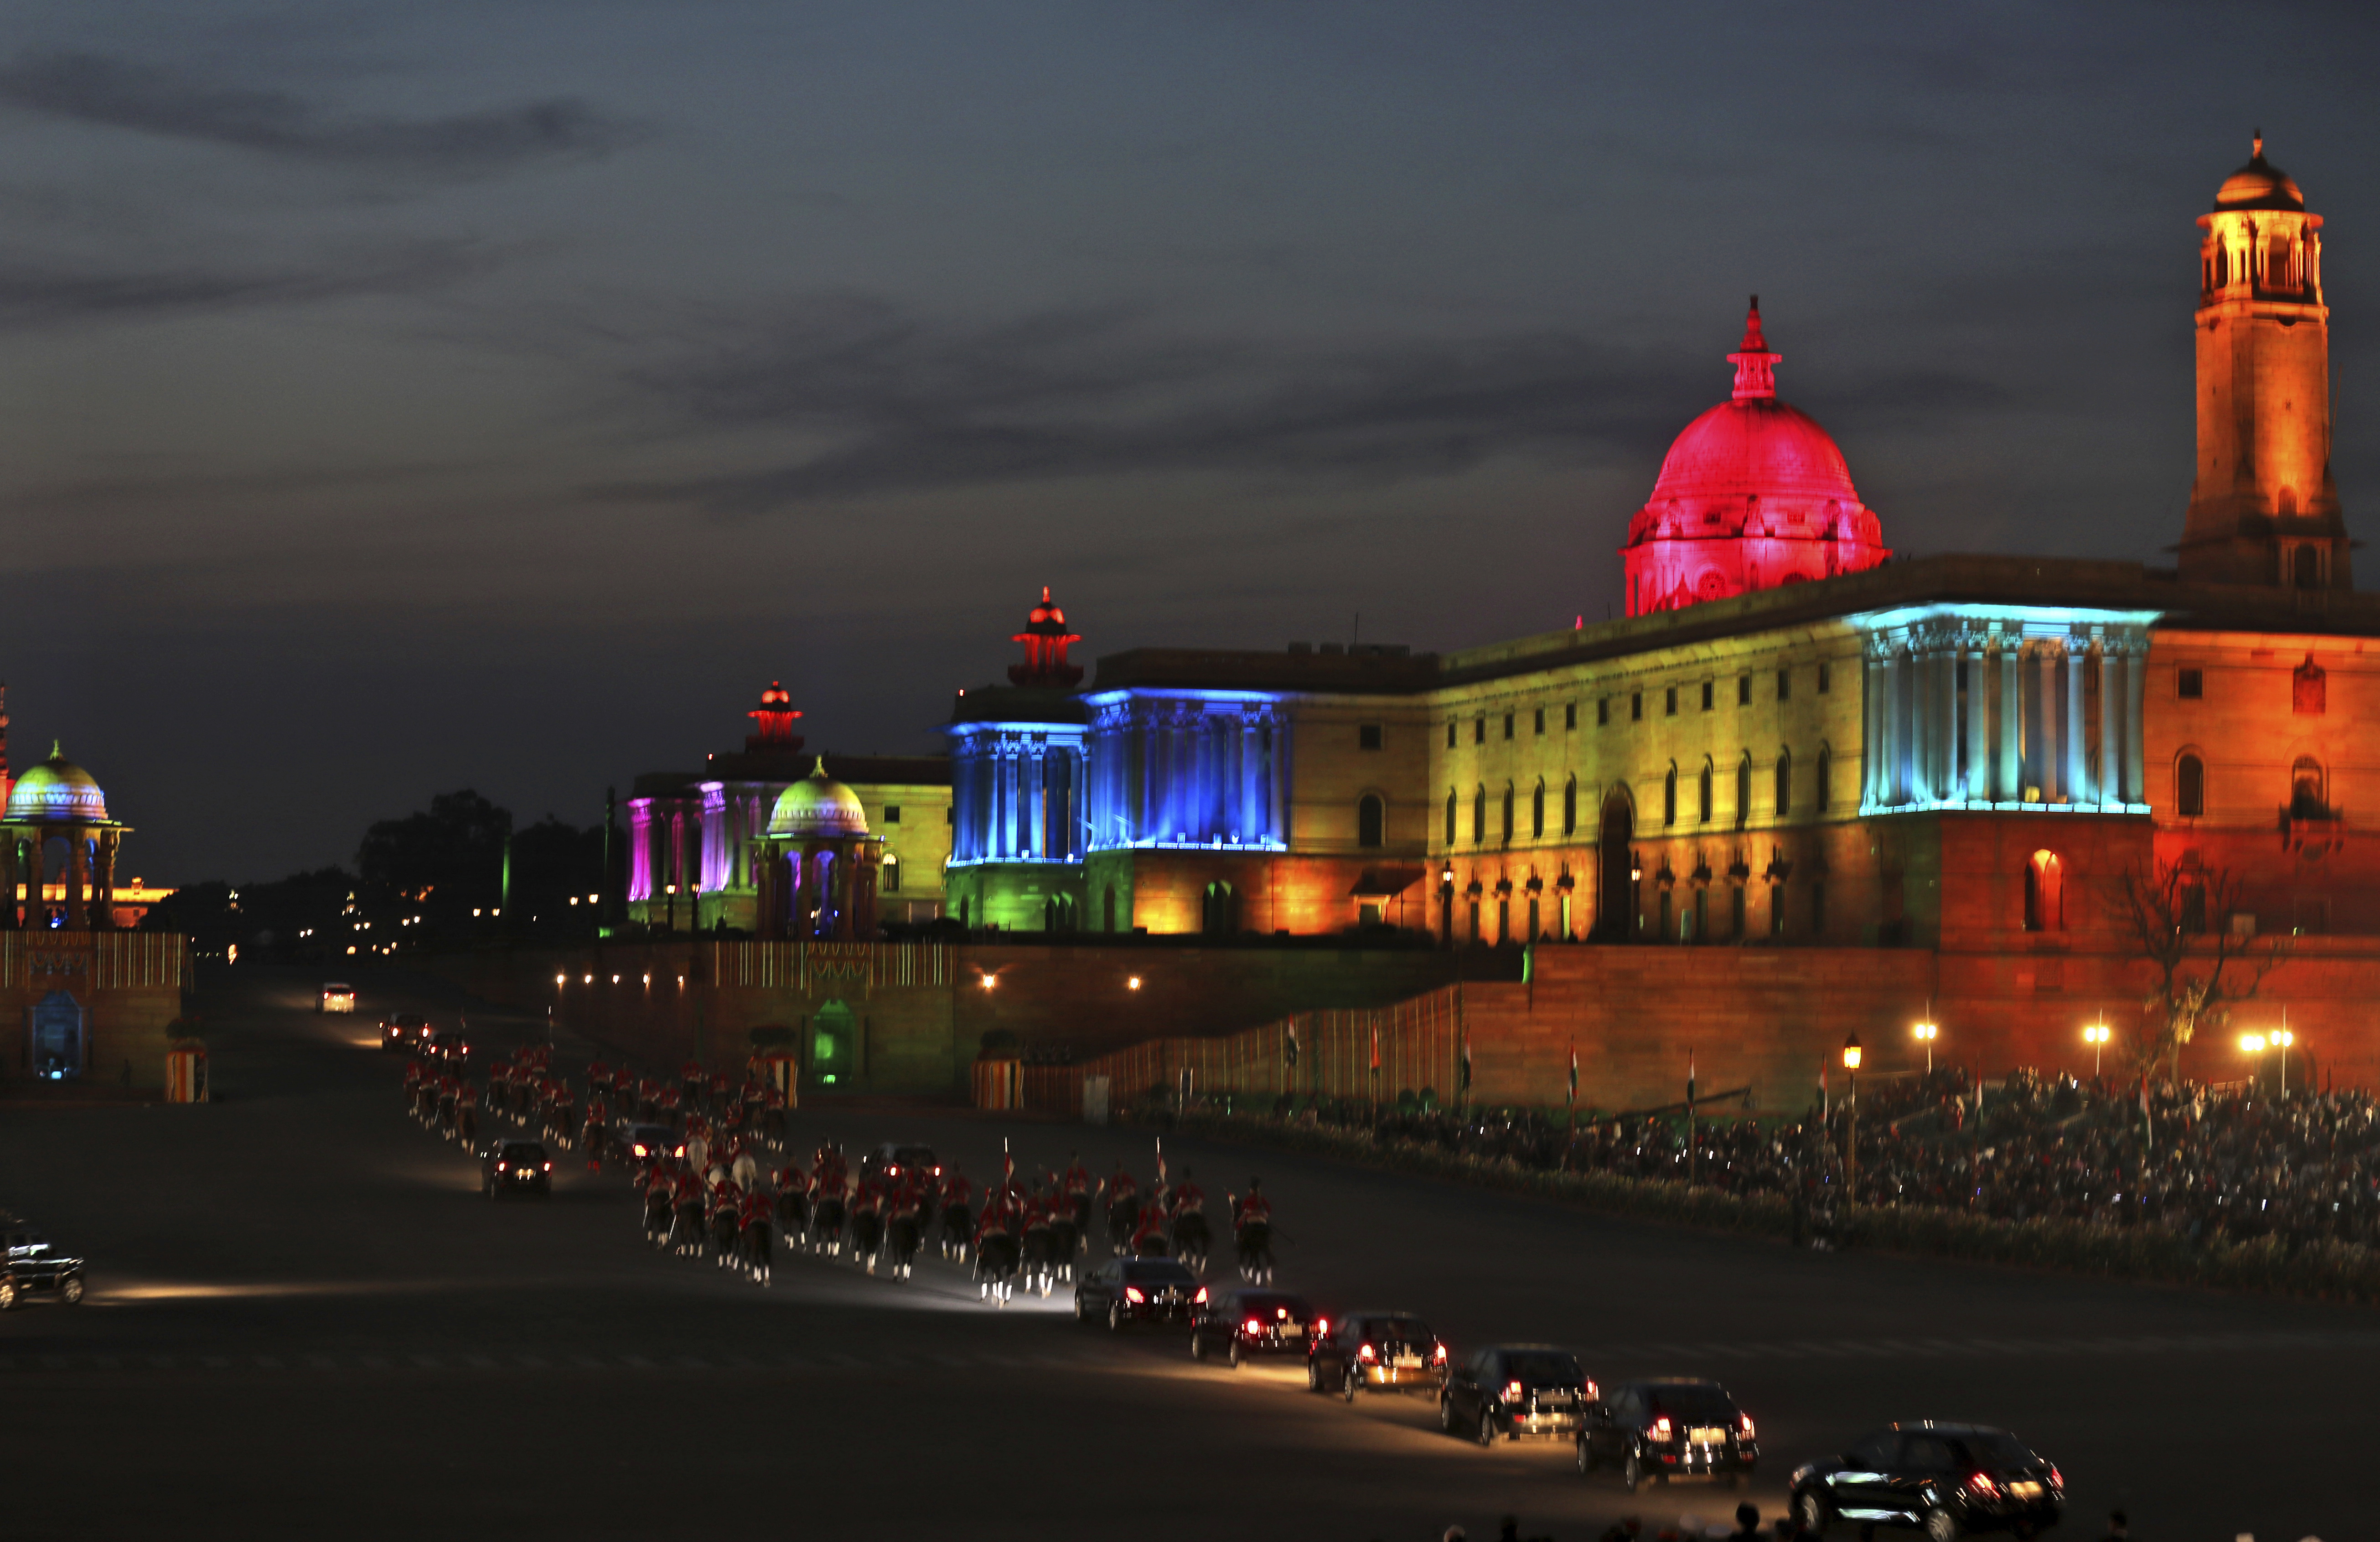 The Indian President's cavalcade leave escorted by horse-mounted presidential bodyguards, past the illuminated north and south blocks, the government seat of power, at the end of the Beating Retreat ceremony at Raisina Hills, in New Delhi, India - AP